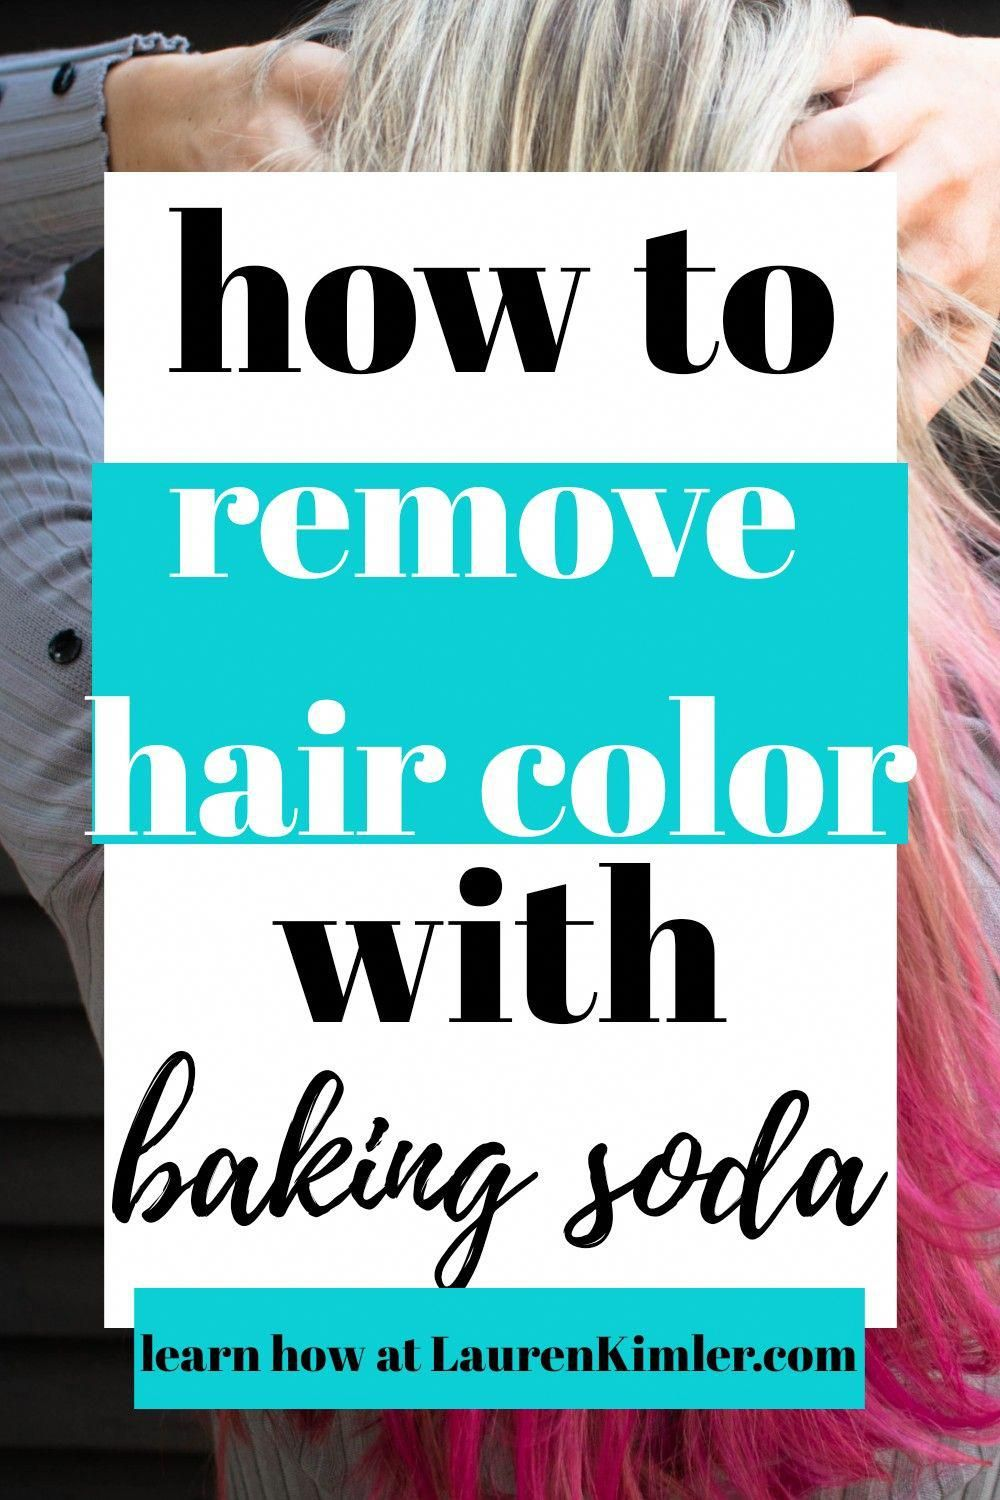 How To Use Baking Soda To Remove Unwanted Hair In Few Minutes Unwanted Hair Removal Baking Soda For Hair Remove Unwanted Facial Hair